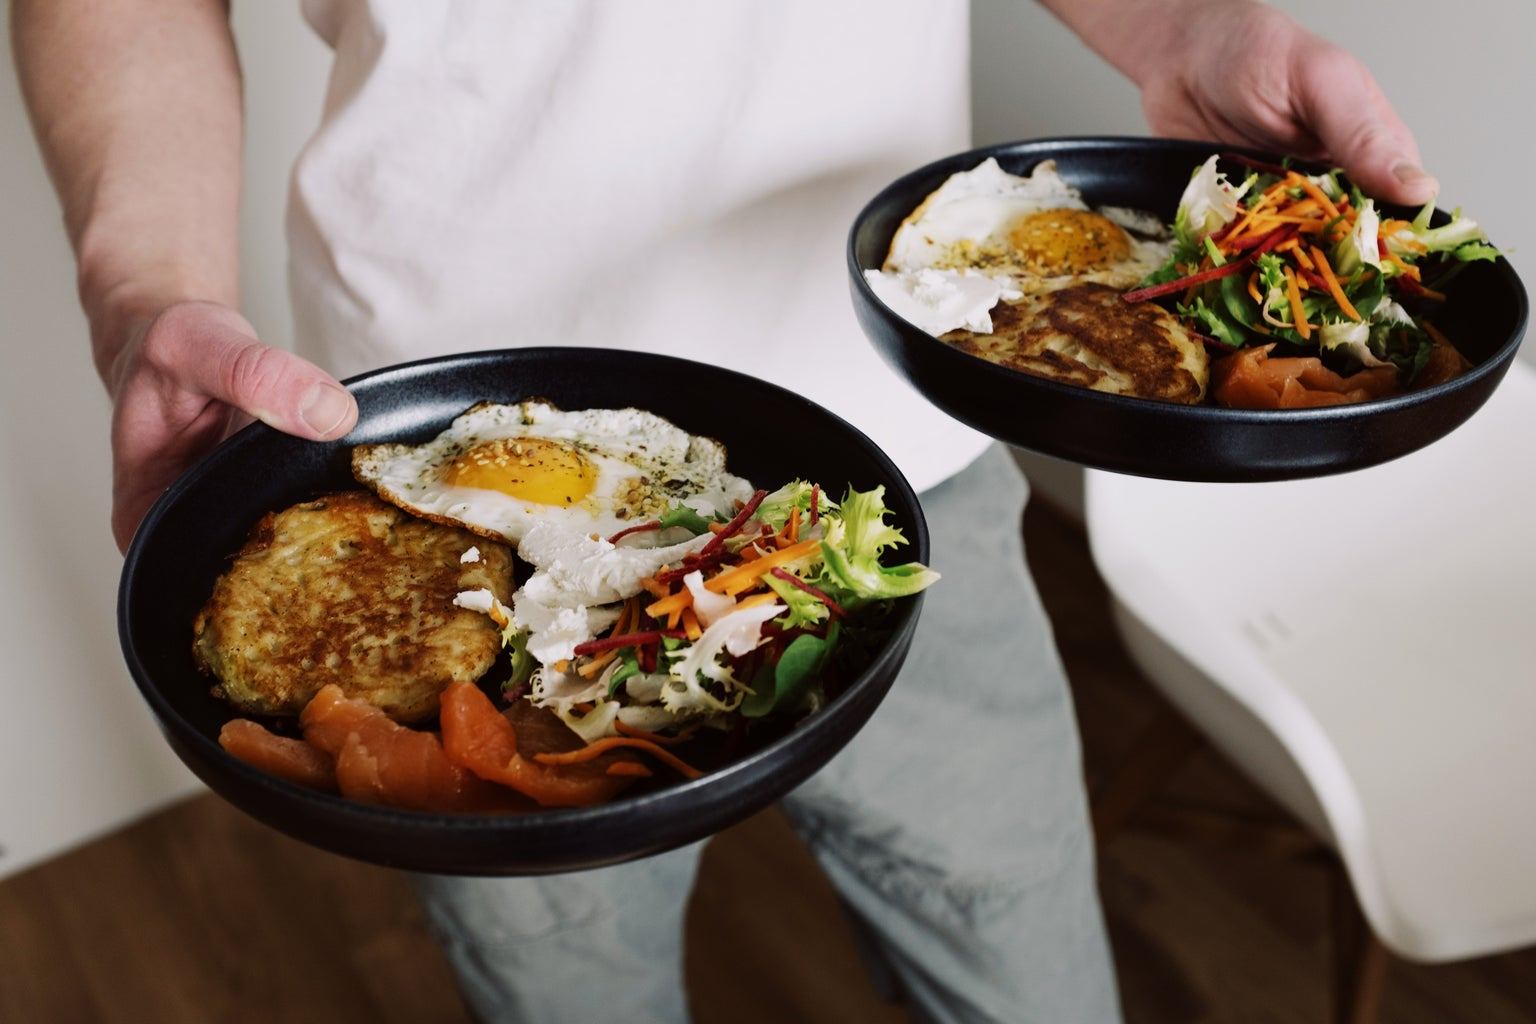 A man holding two plates of food; there is egg, a salad of some kind, and what looks to be potato and bacon.